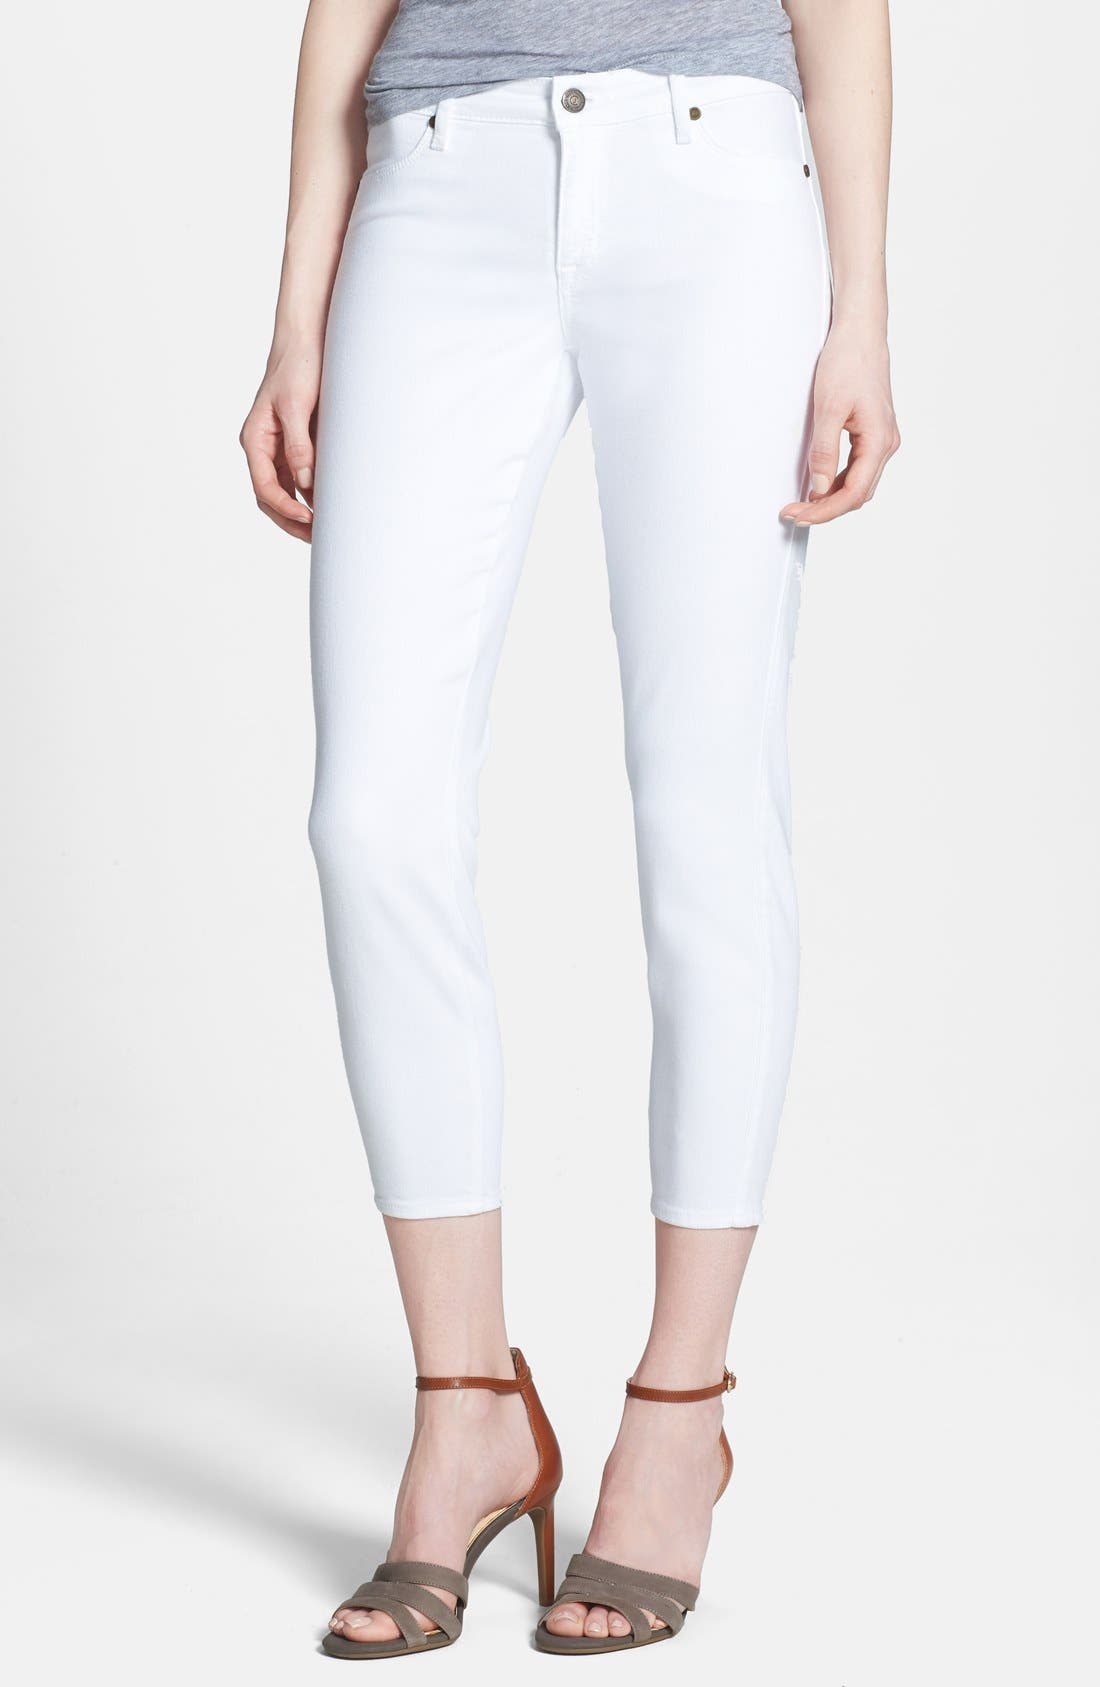 'Believe' Stretch Twill Crop Leggings,                         Main,                         color, Optic White